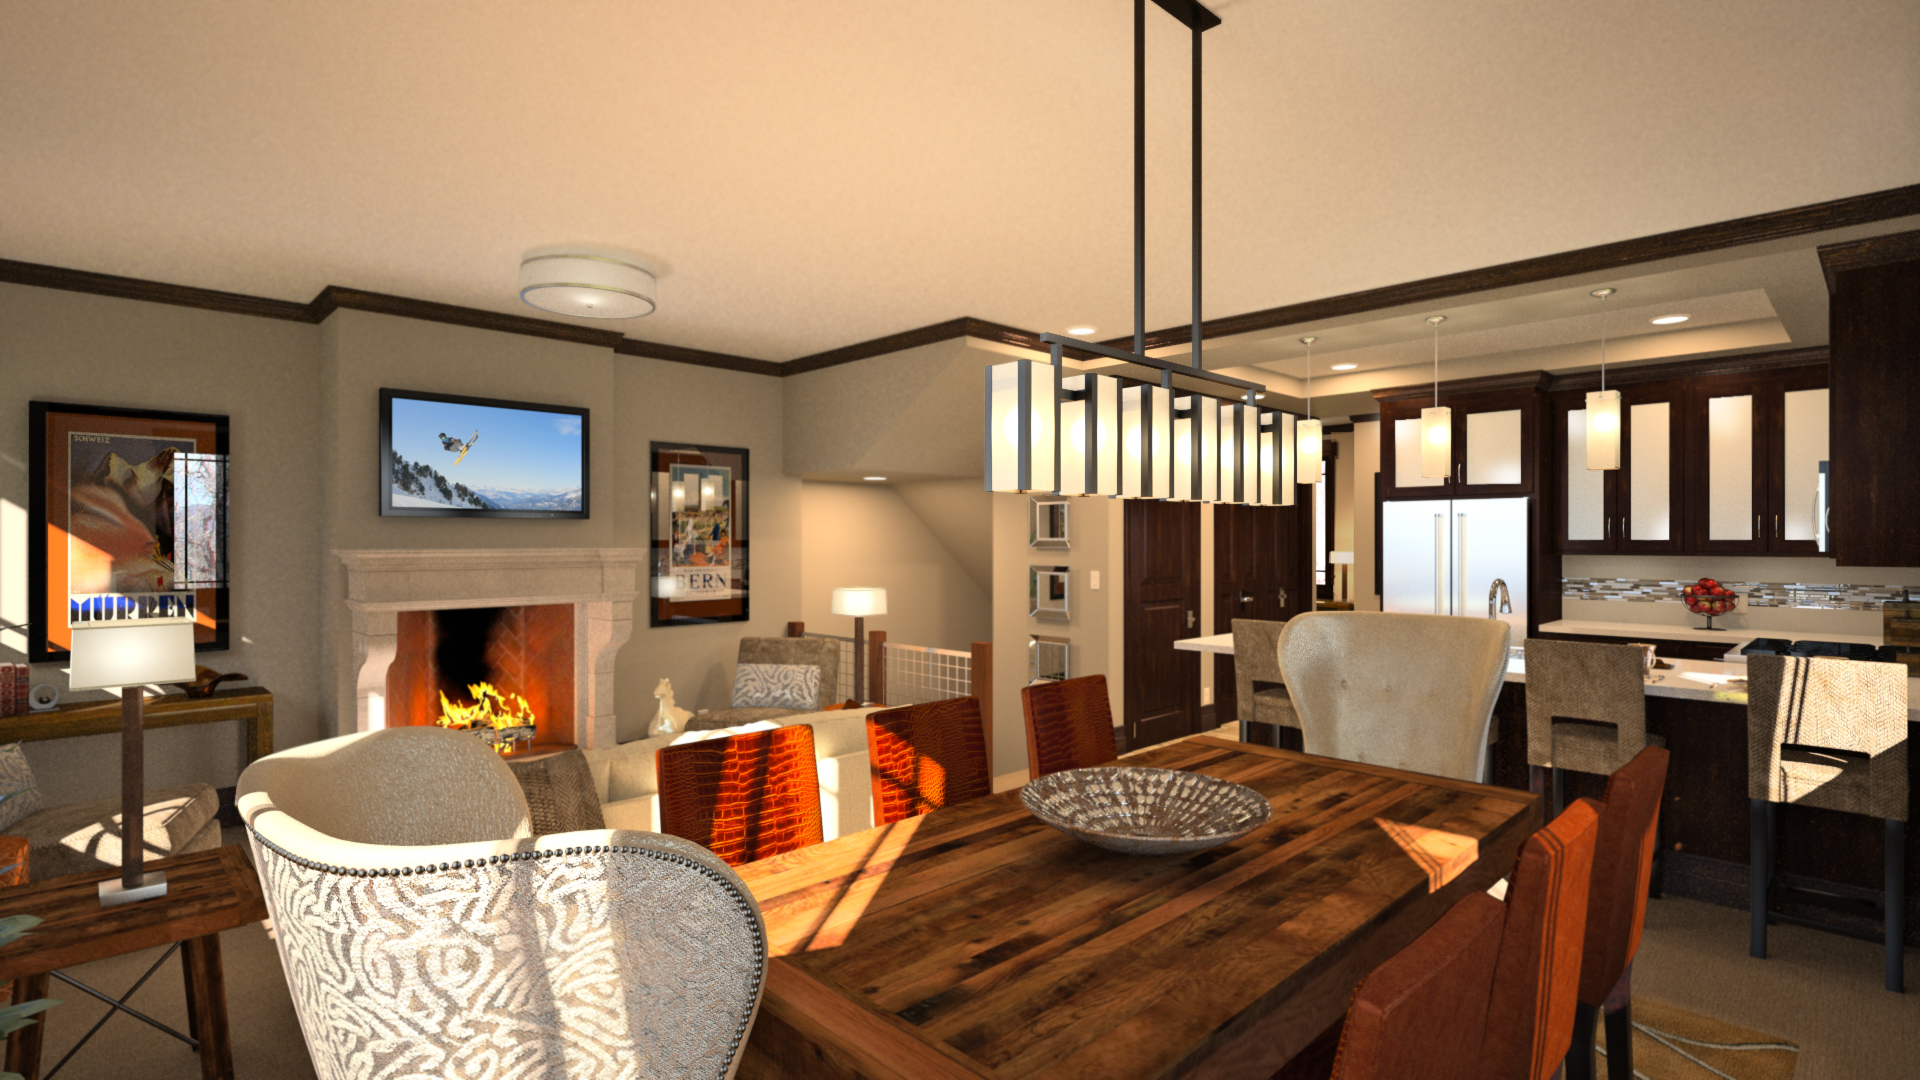 3D rendering of Utah townhome